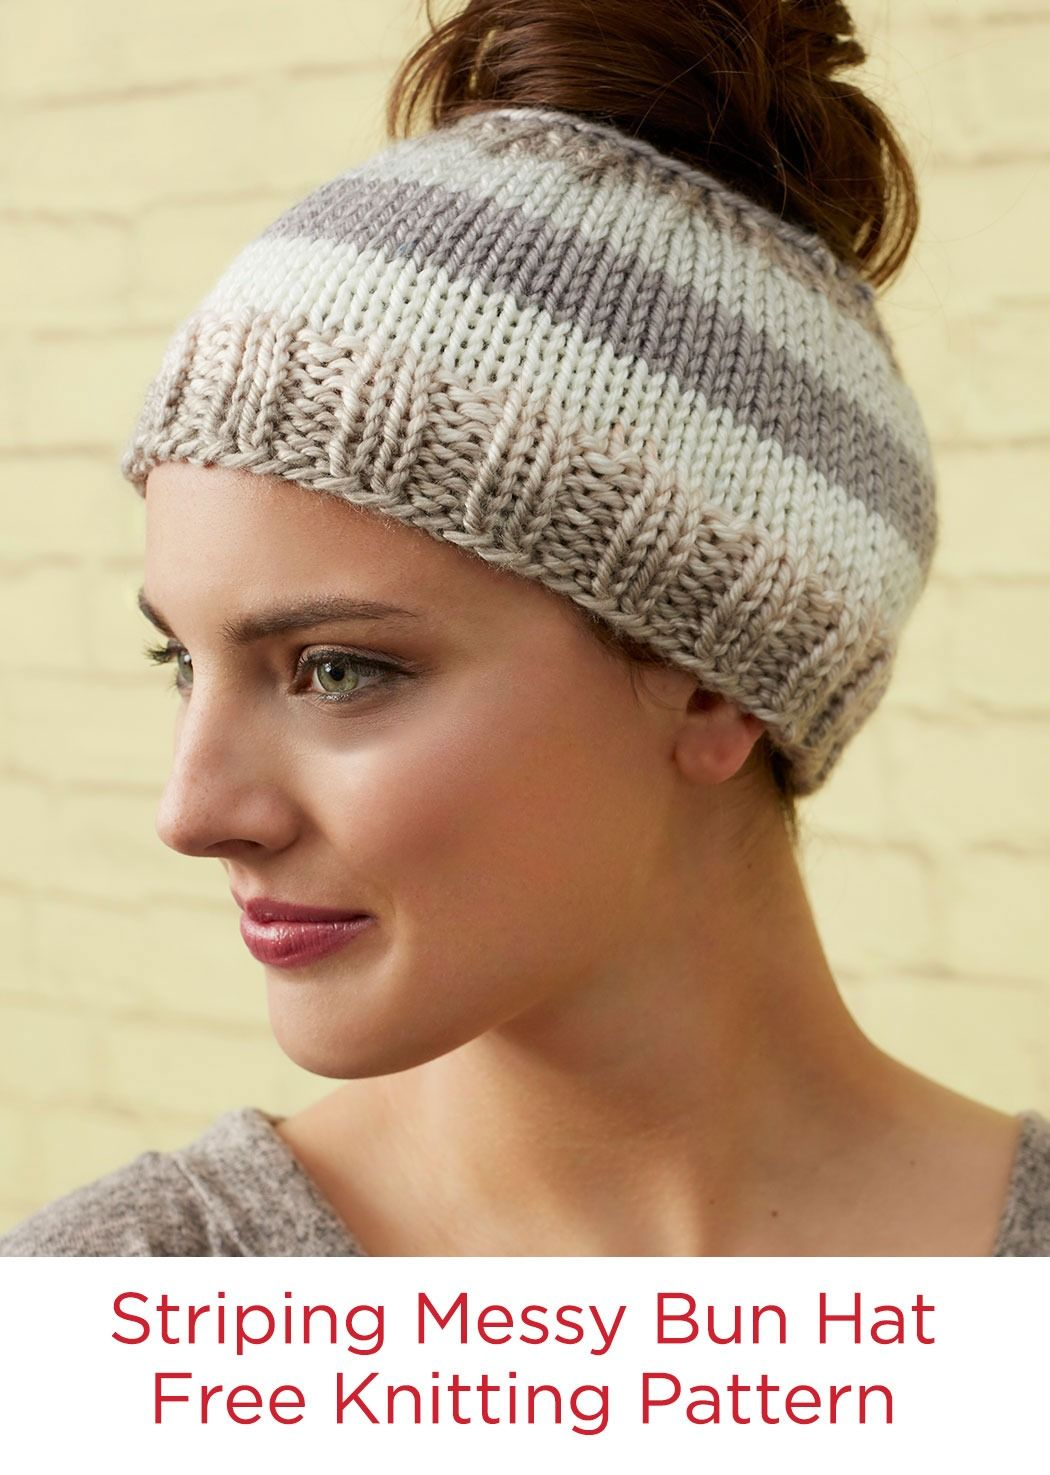 cdade9a5874 Striping Messy Bun Hat Free Knitting Pattern in Red Heart Soft Essentials  Stripes yarn